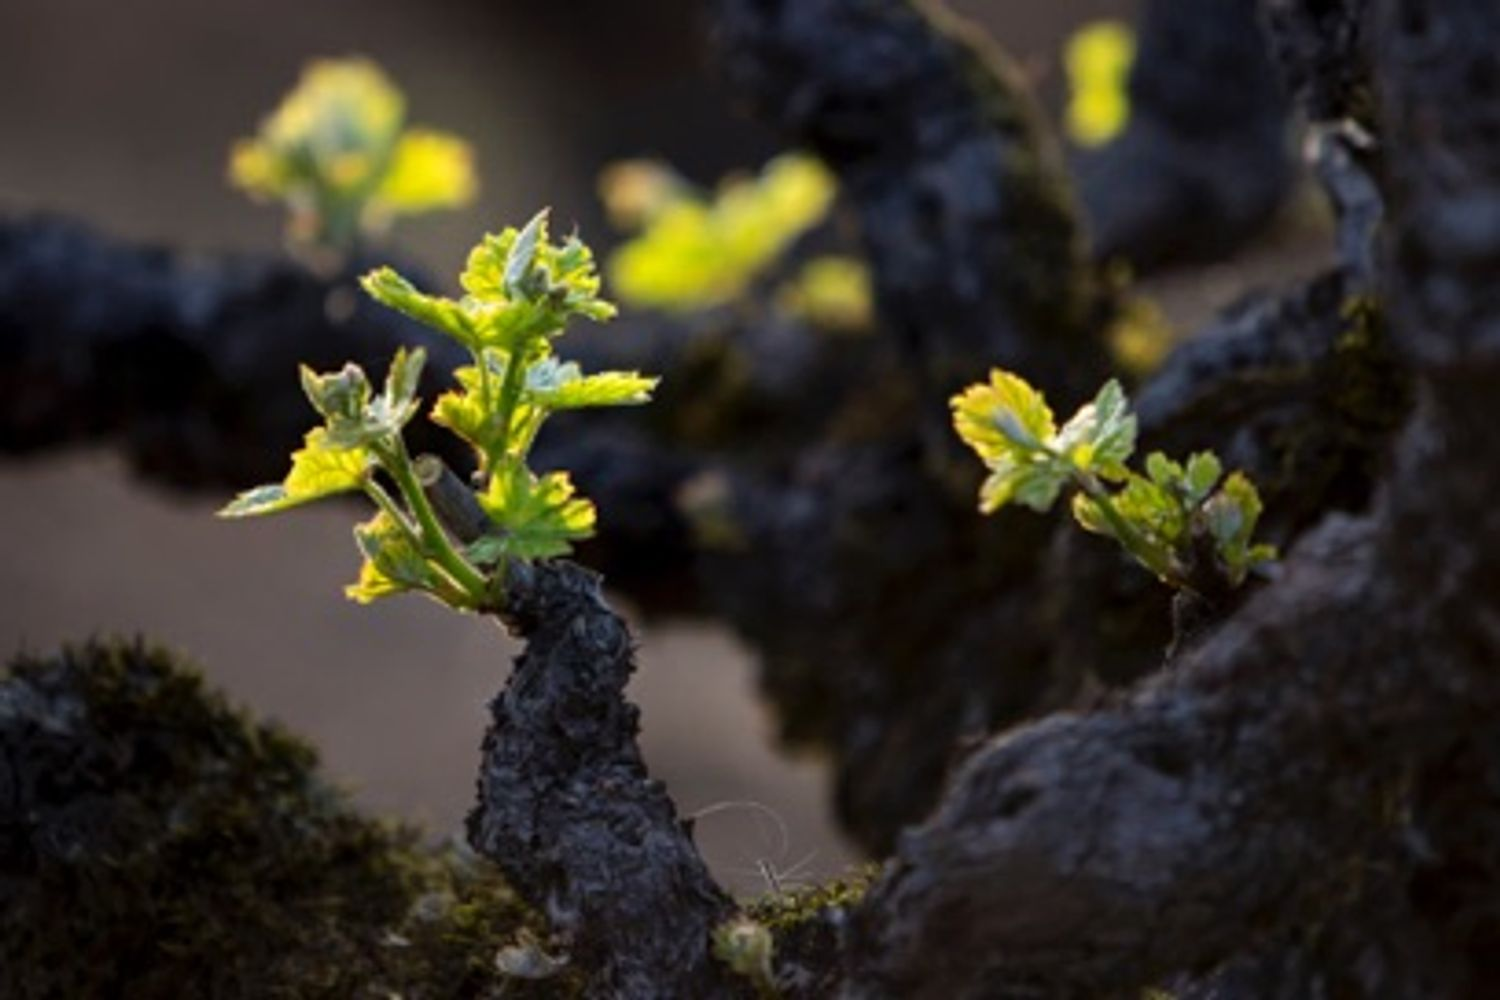 A stage of annual vine development during which small shoots emerge from the vine buds in the spring